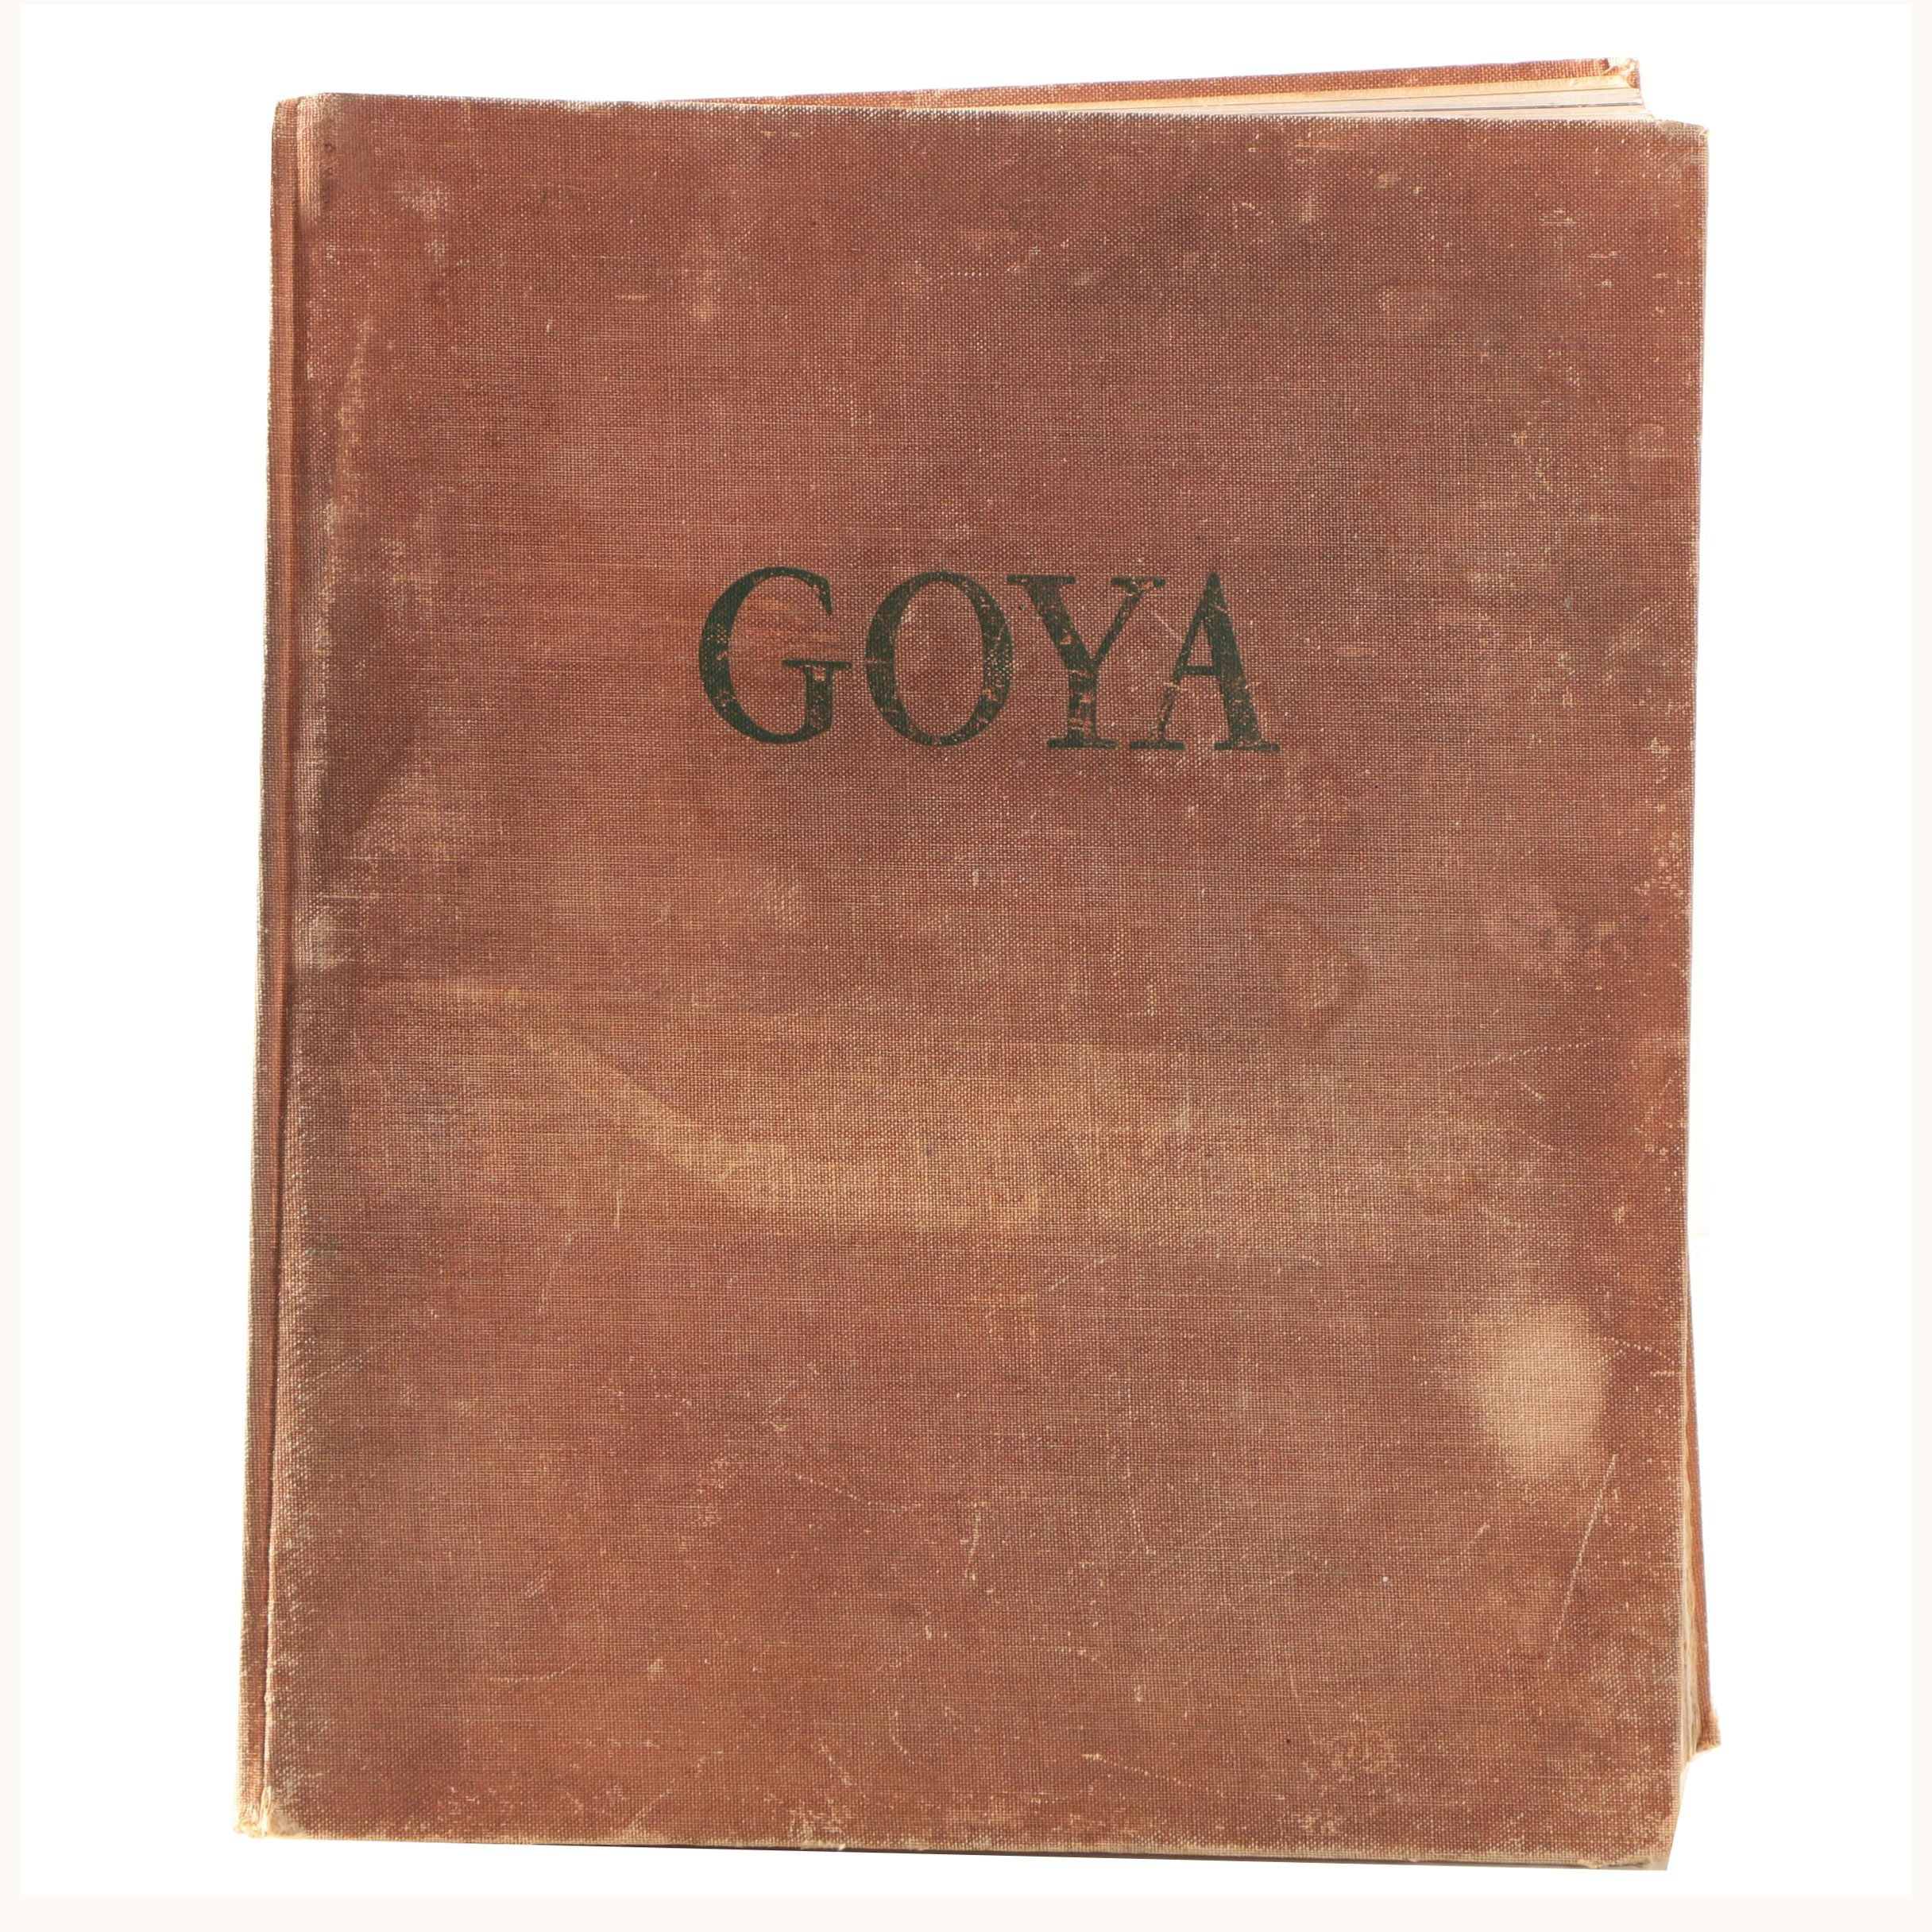 "1964 First English Edition ""Goya"" Art Book"